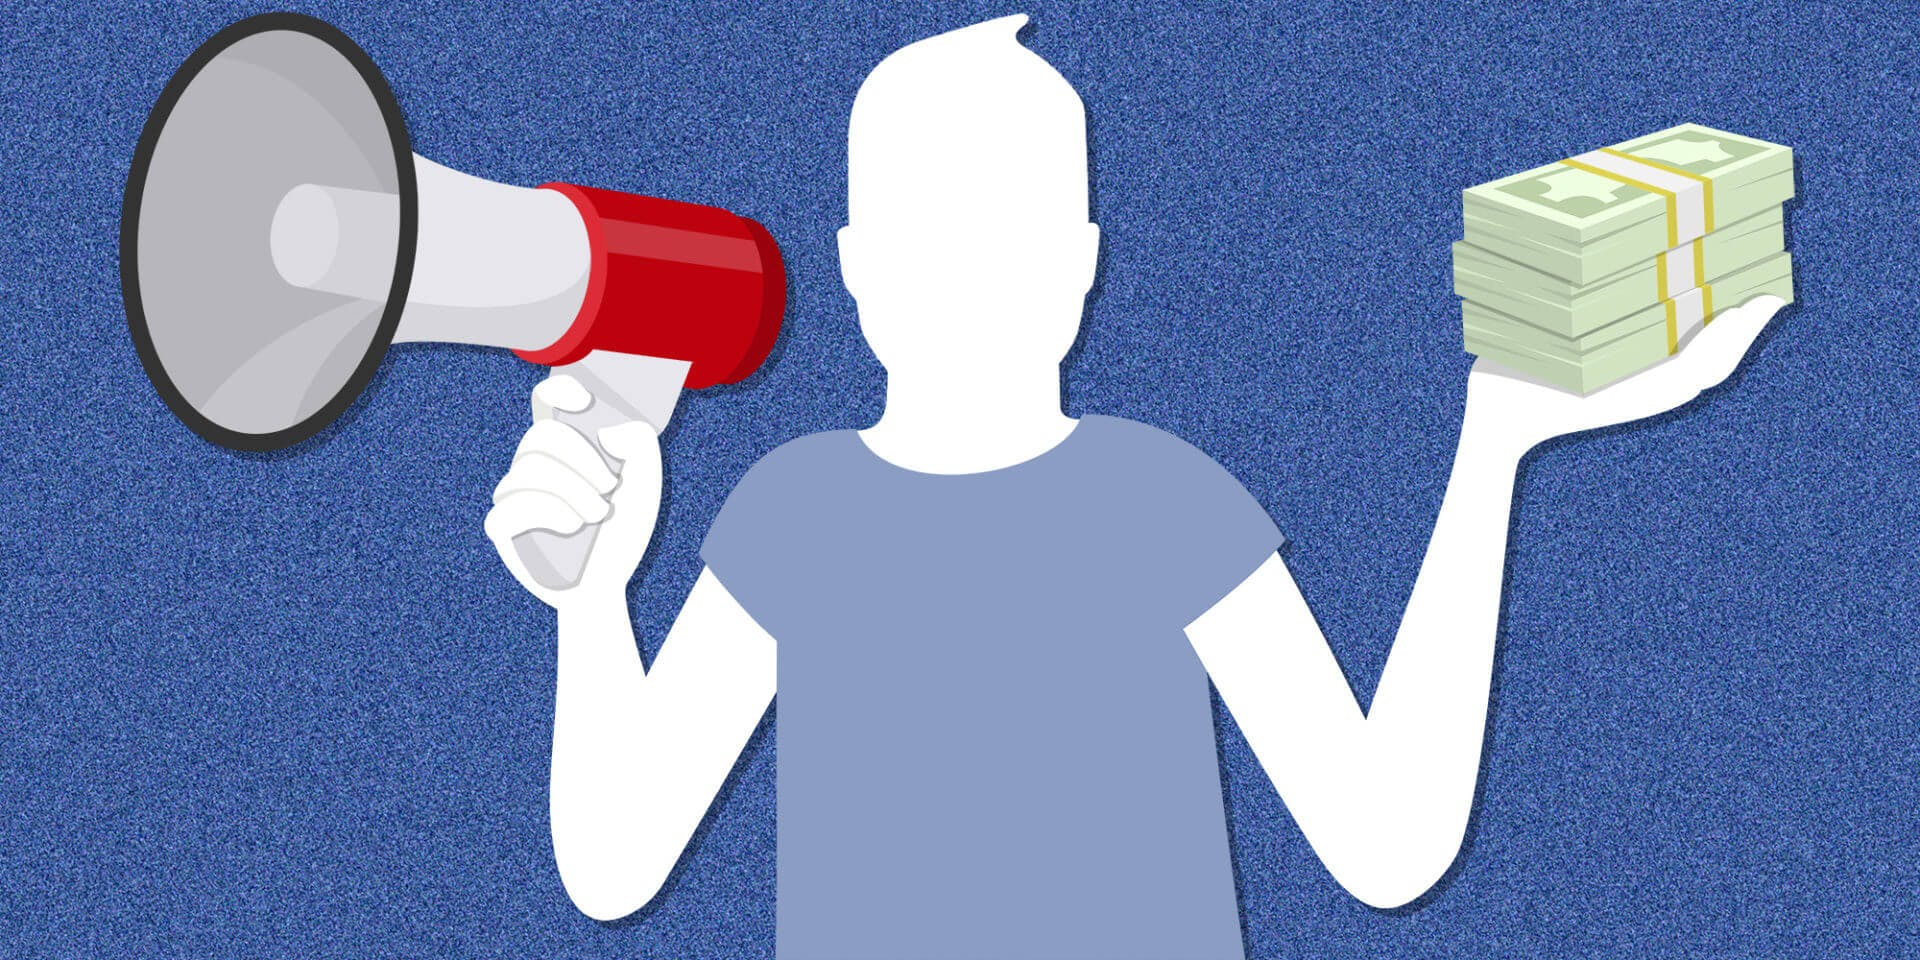 facebook icon holding bundles of cash and a megaphone